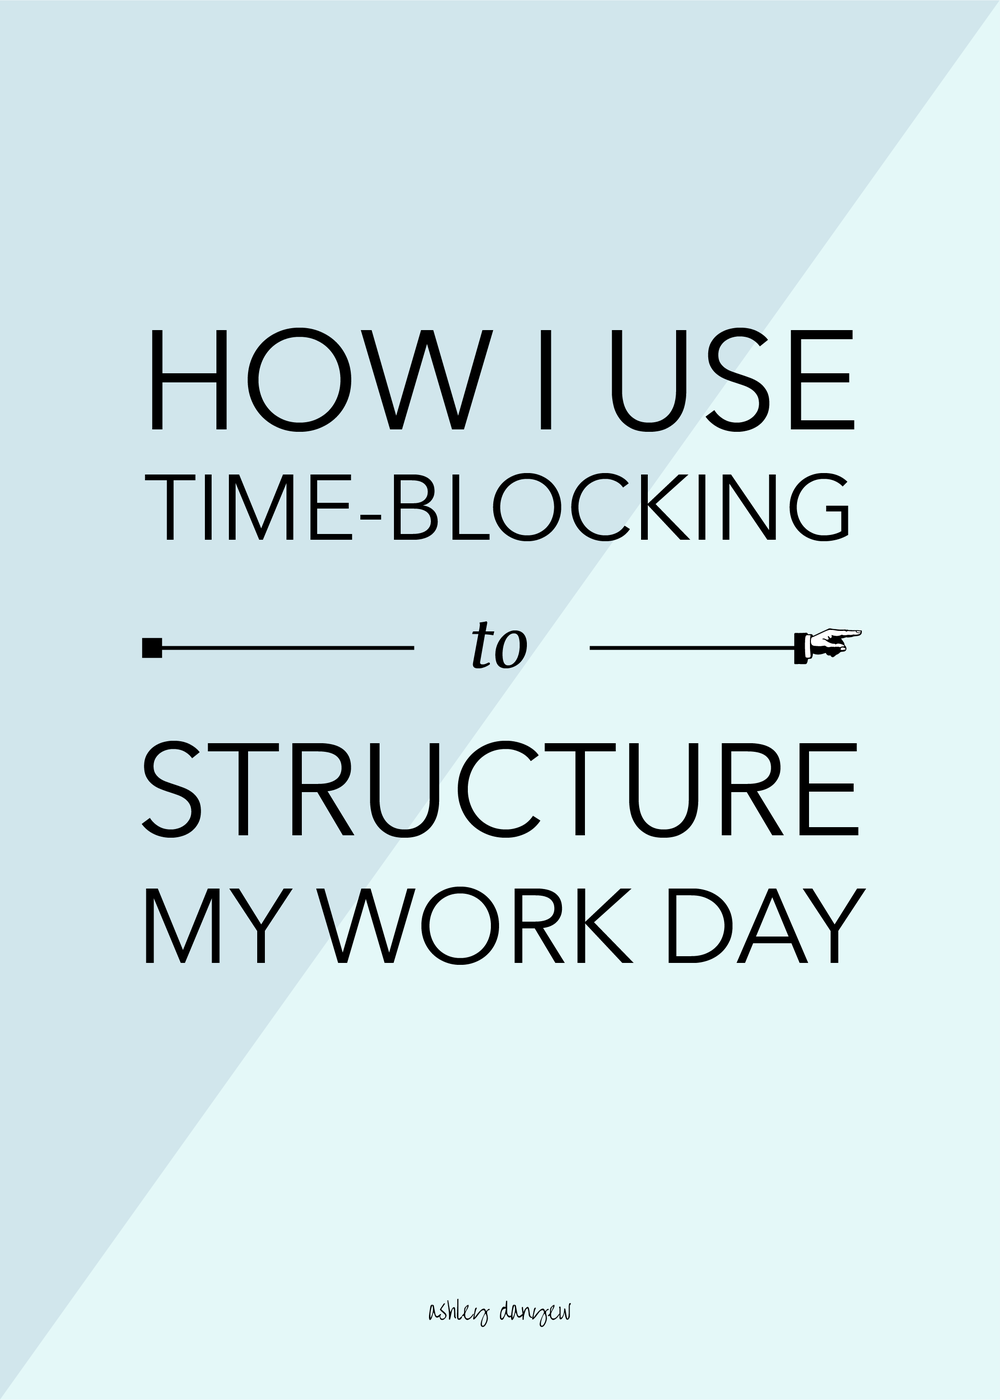 How I Use Time-Blocking to Structure My Work Day-01.png